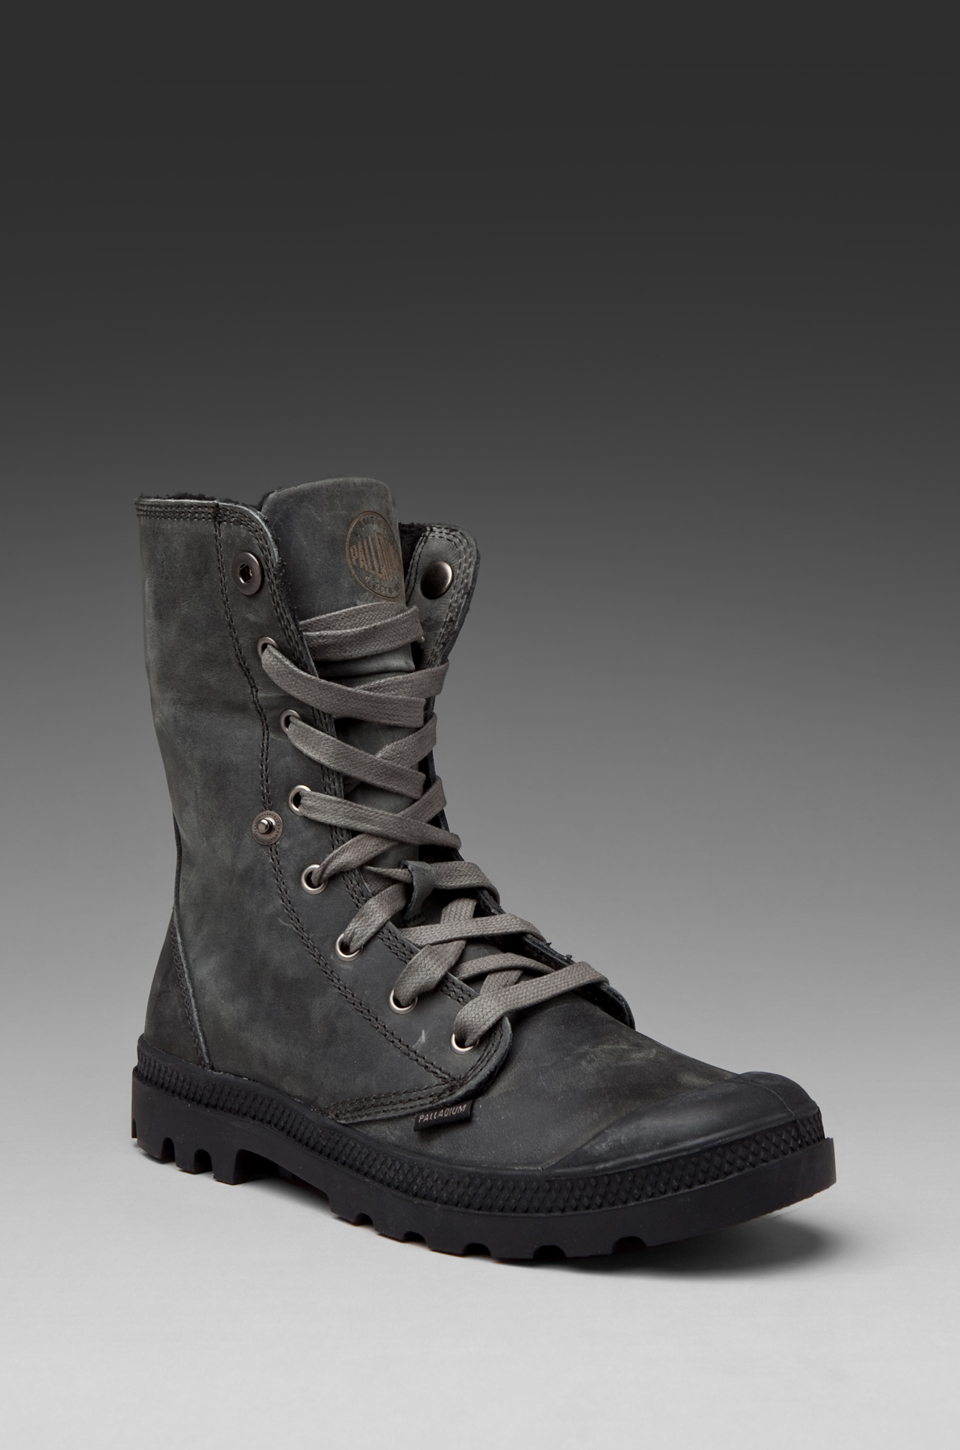 eaef9ab32e2 Palladium Leather/knit Baggy in Grey/black in Gray for Men - Lyst